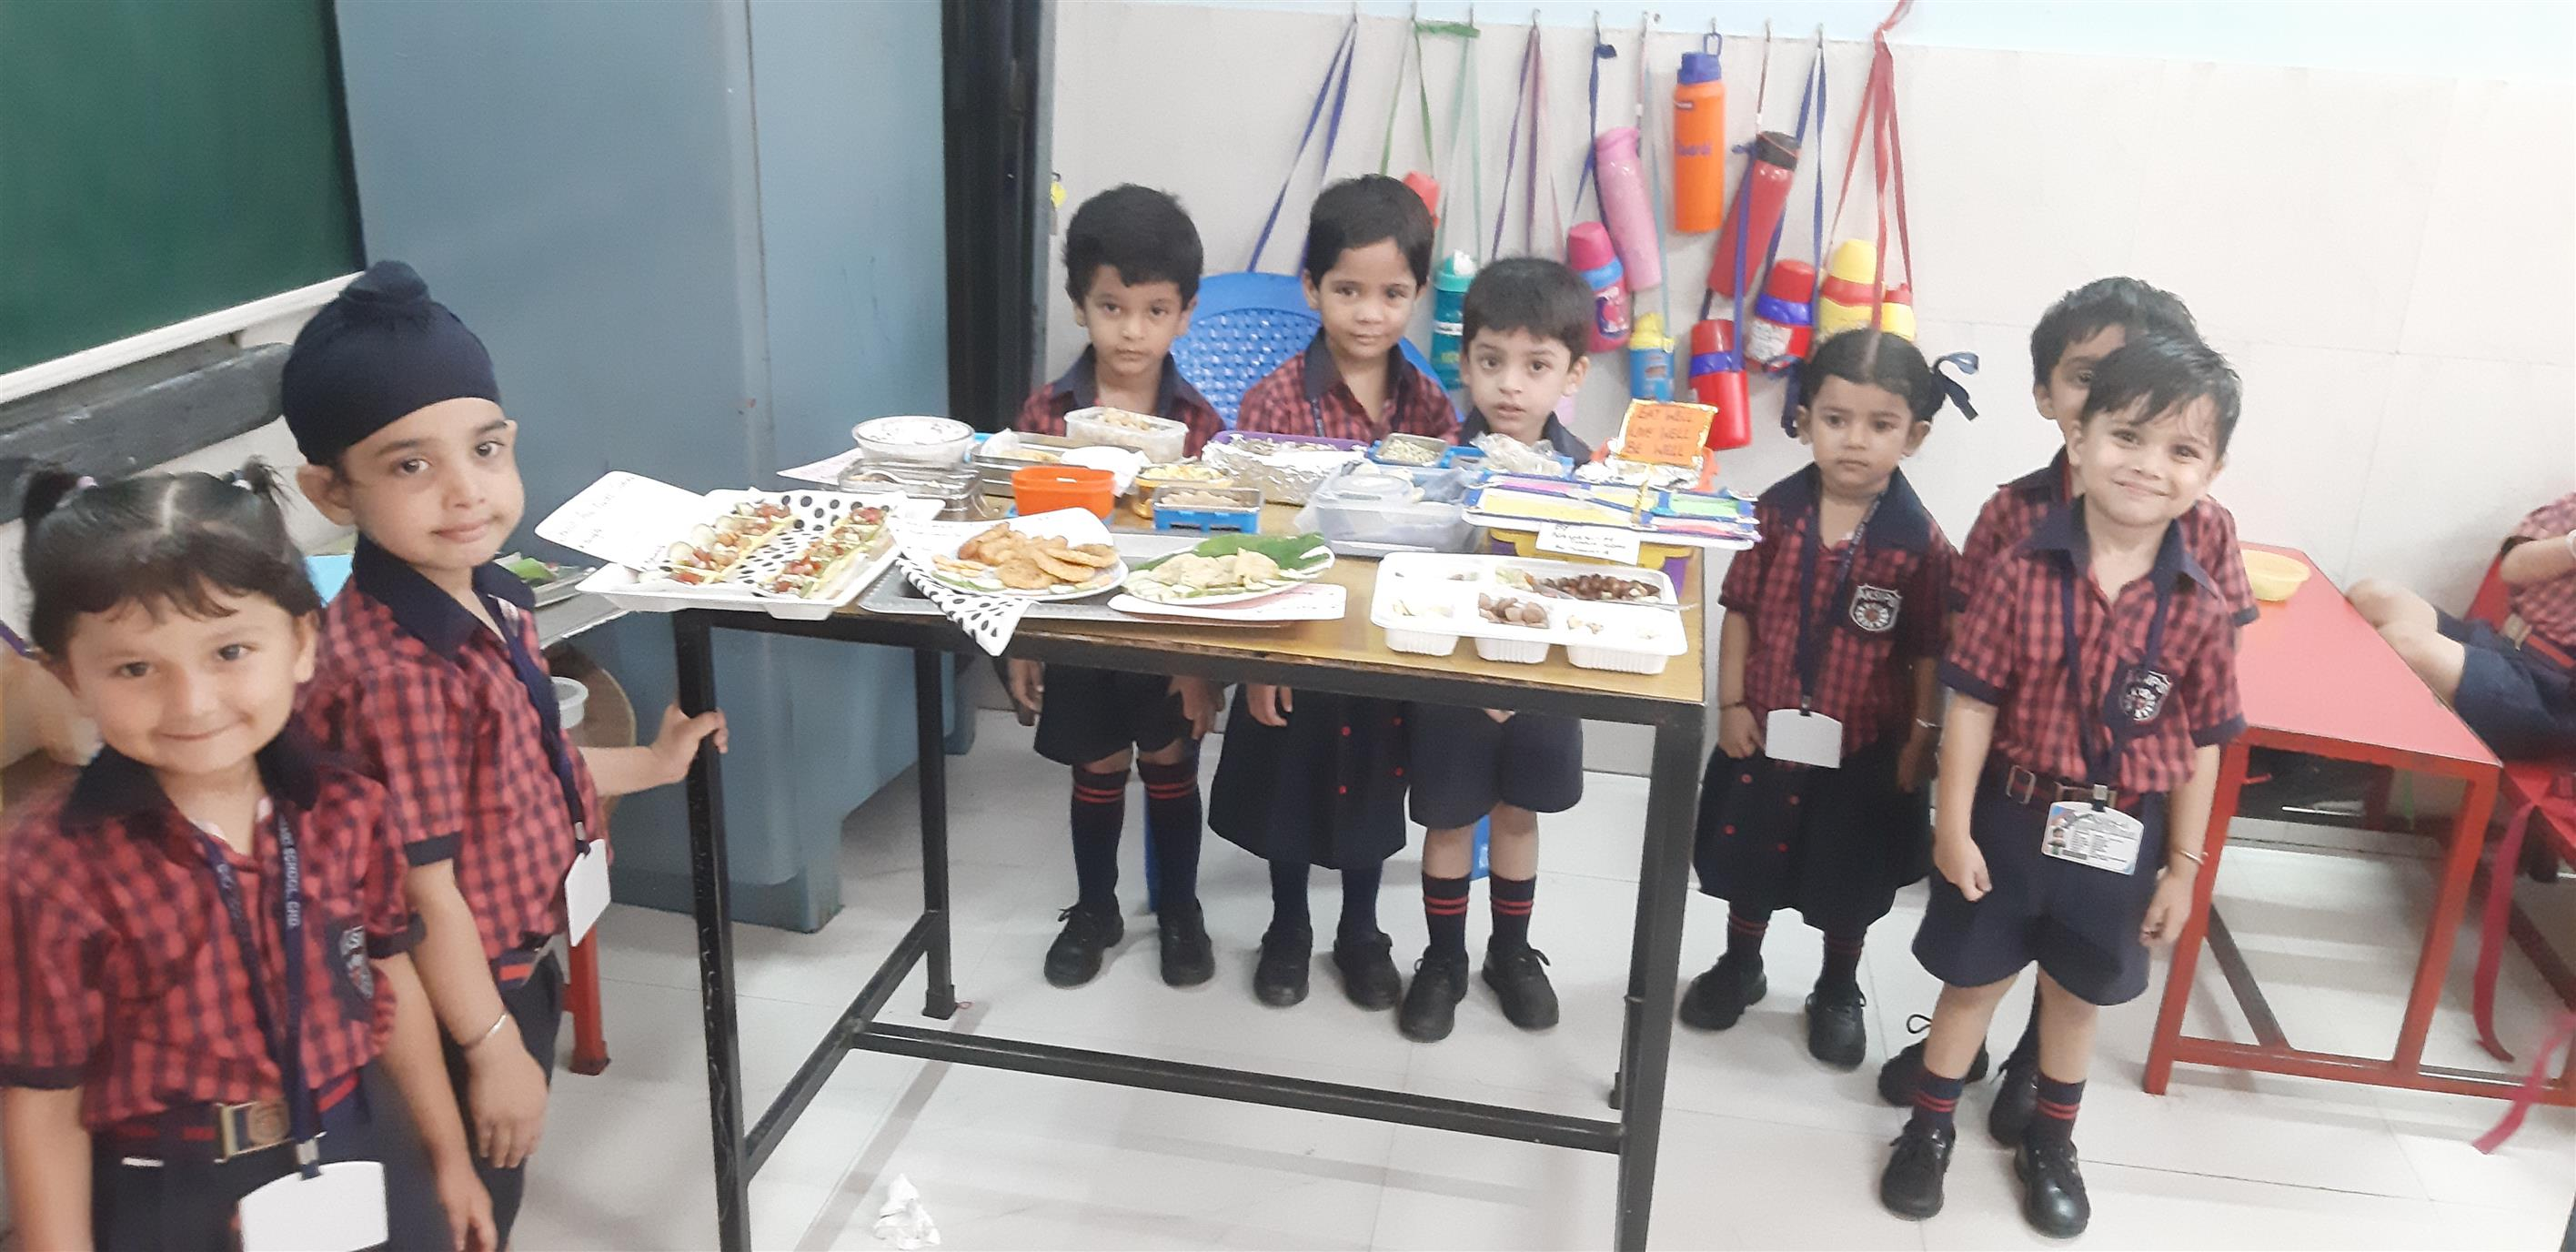 Healthy Tiffin Activity at AKSIPS 41 Smart School        To inculcate healthy eating habits among children the students of Pre Nursery Class of AKSIPS 41 Smart School had healthy tiffin activity. The students brought healthy and nutritious tiffin like idli, vegetable, pulao, sprouts salad, curd, paneer and so on. The children later enjoyed their special tiffins. The importance of developing healthy eating habits was held to the tiny tots by the teachers. | AKSIPS 41 Chandigarh